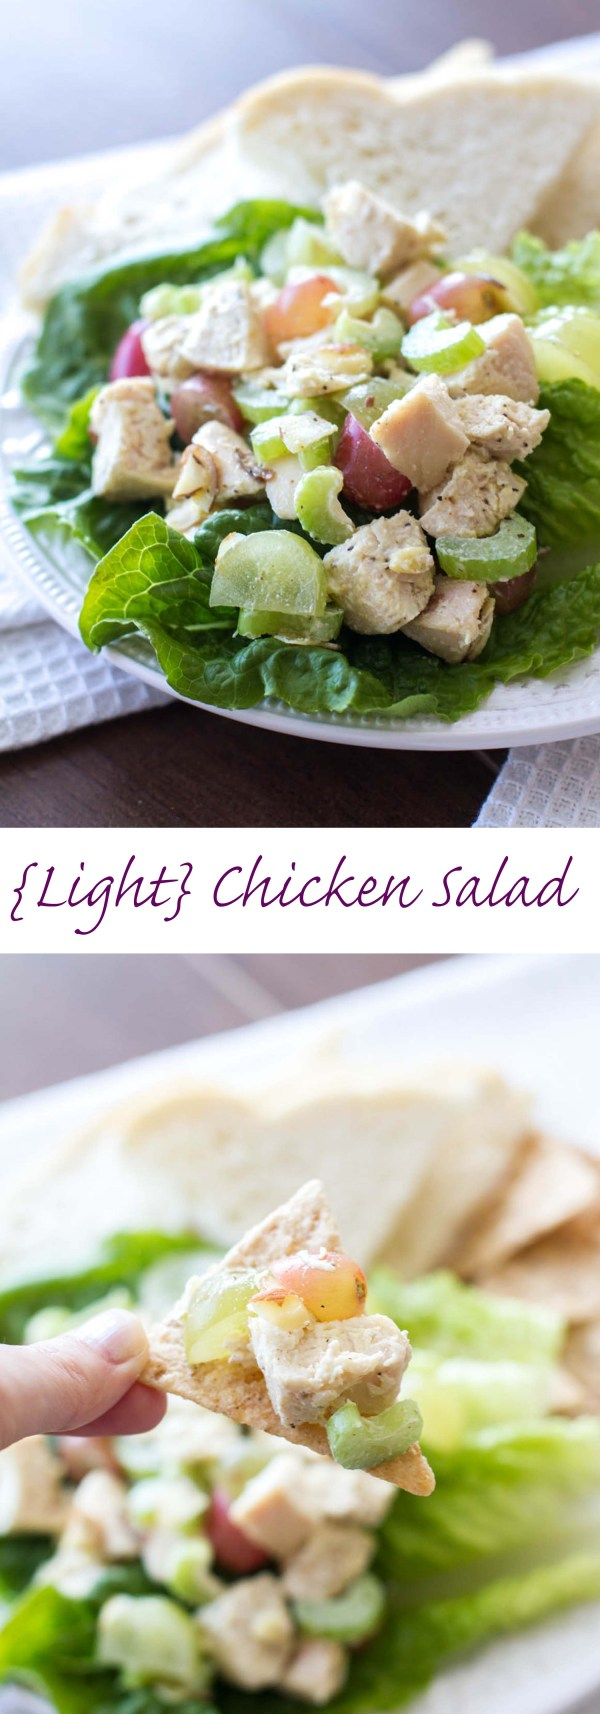 No more boring bird! A fast and family-friendly weeknight staple, chicken is a go-to protein choice for busy family cooks. Americans love chicken and healthy chicken recipes. The lean protein is quick cooking, reliable, and affordable. Chicken breasts in particular are a must for busy families.